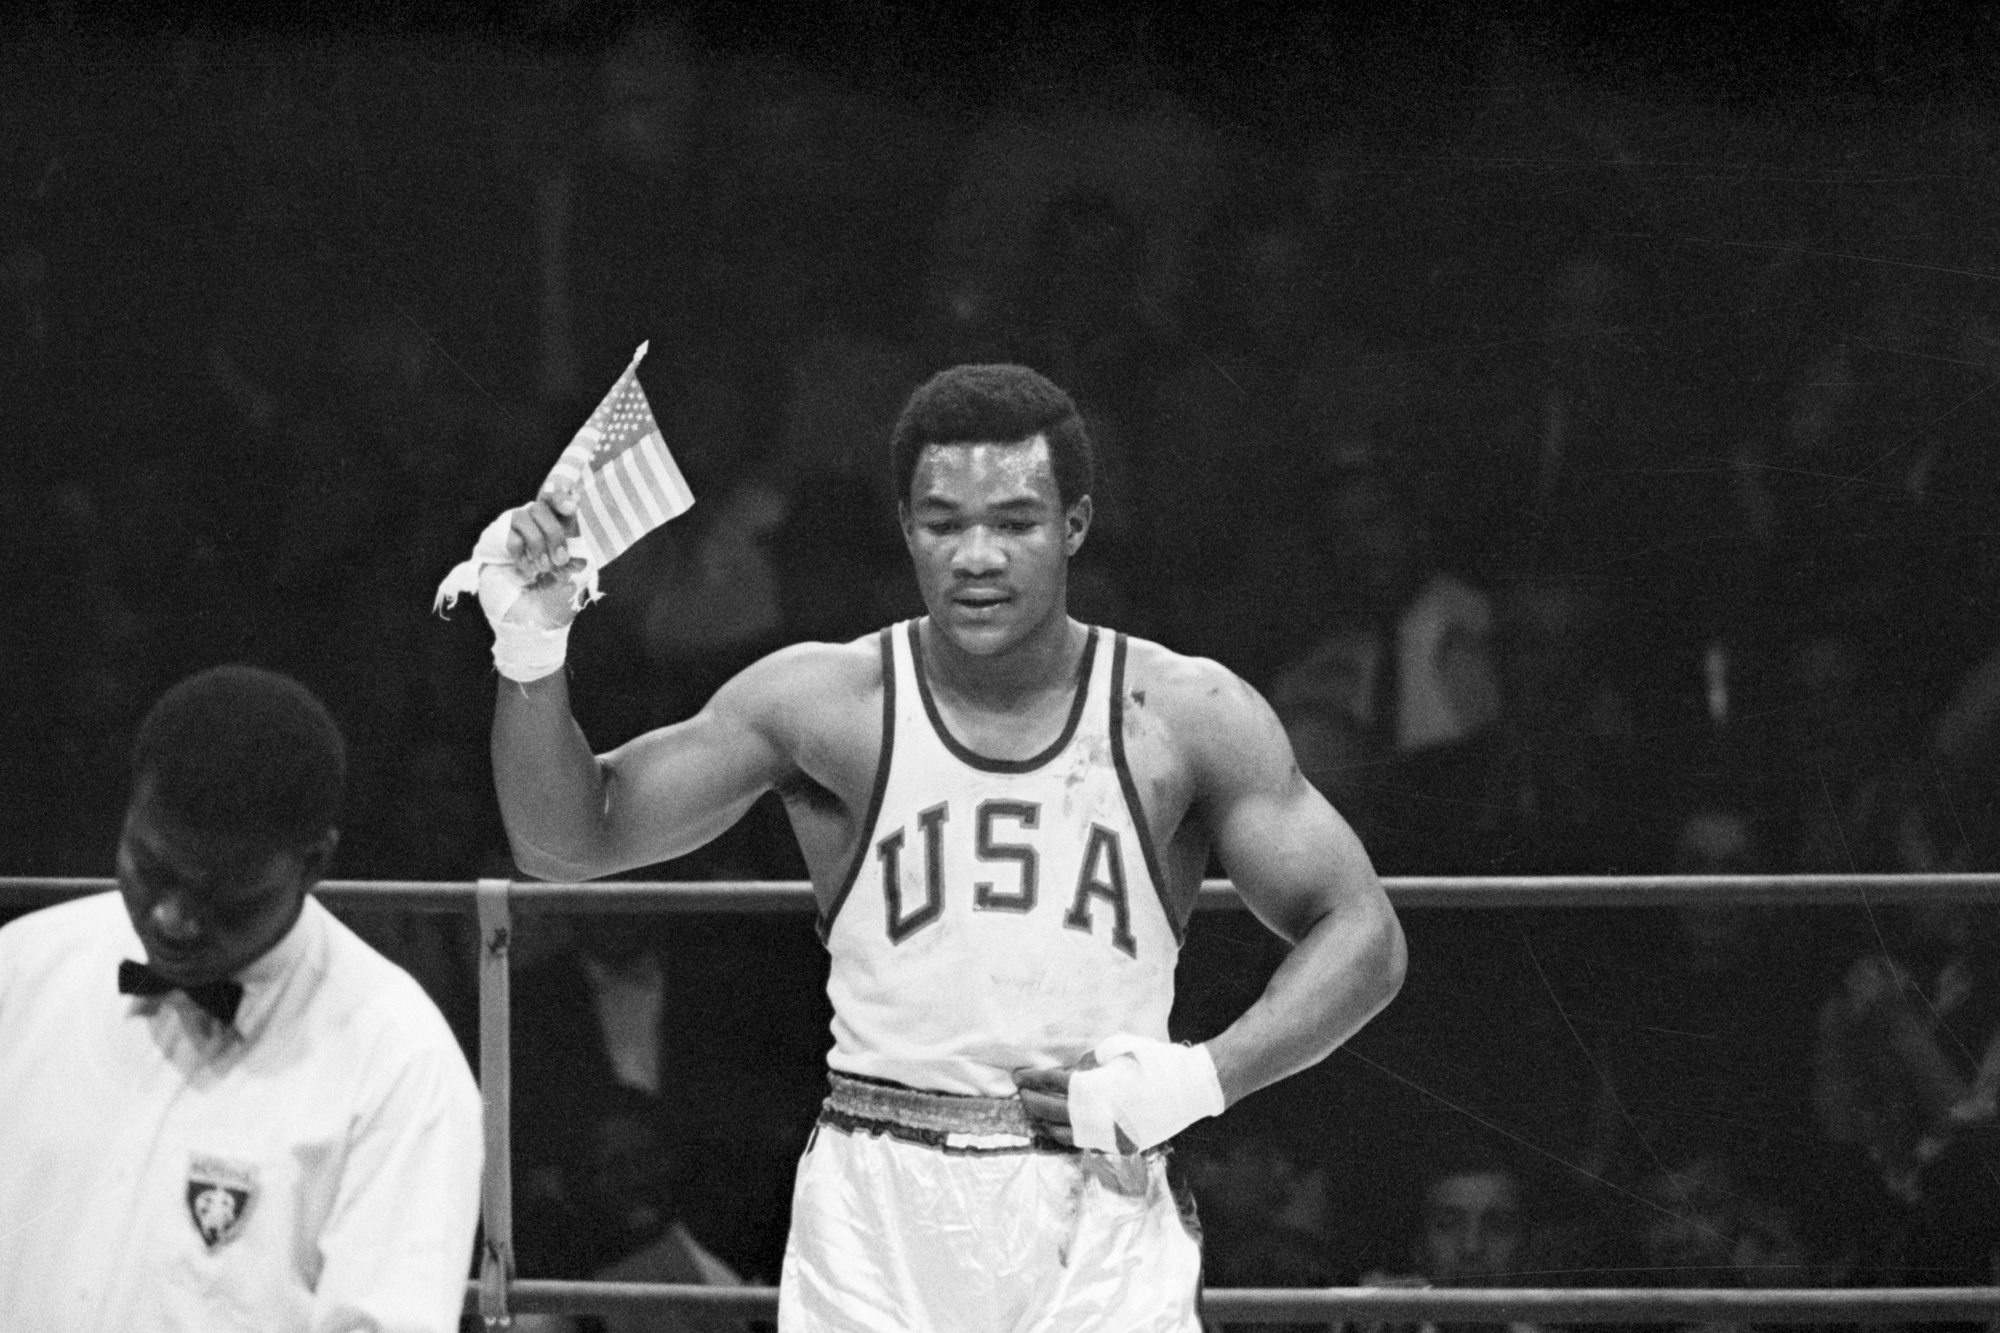 George Foreman of Houston, TX, waves a small American flag after he won the Olympics heavyweight boxing gold medal to climax America's greatest effort at an Olympics. The US walked away with 45 gold medals, 27 silvers and 34 bronze. Foreman scored a second-round technical knockout over Ionas Chepulis of the Soviet Union.